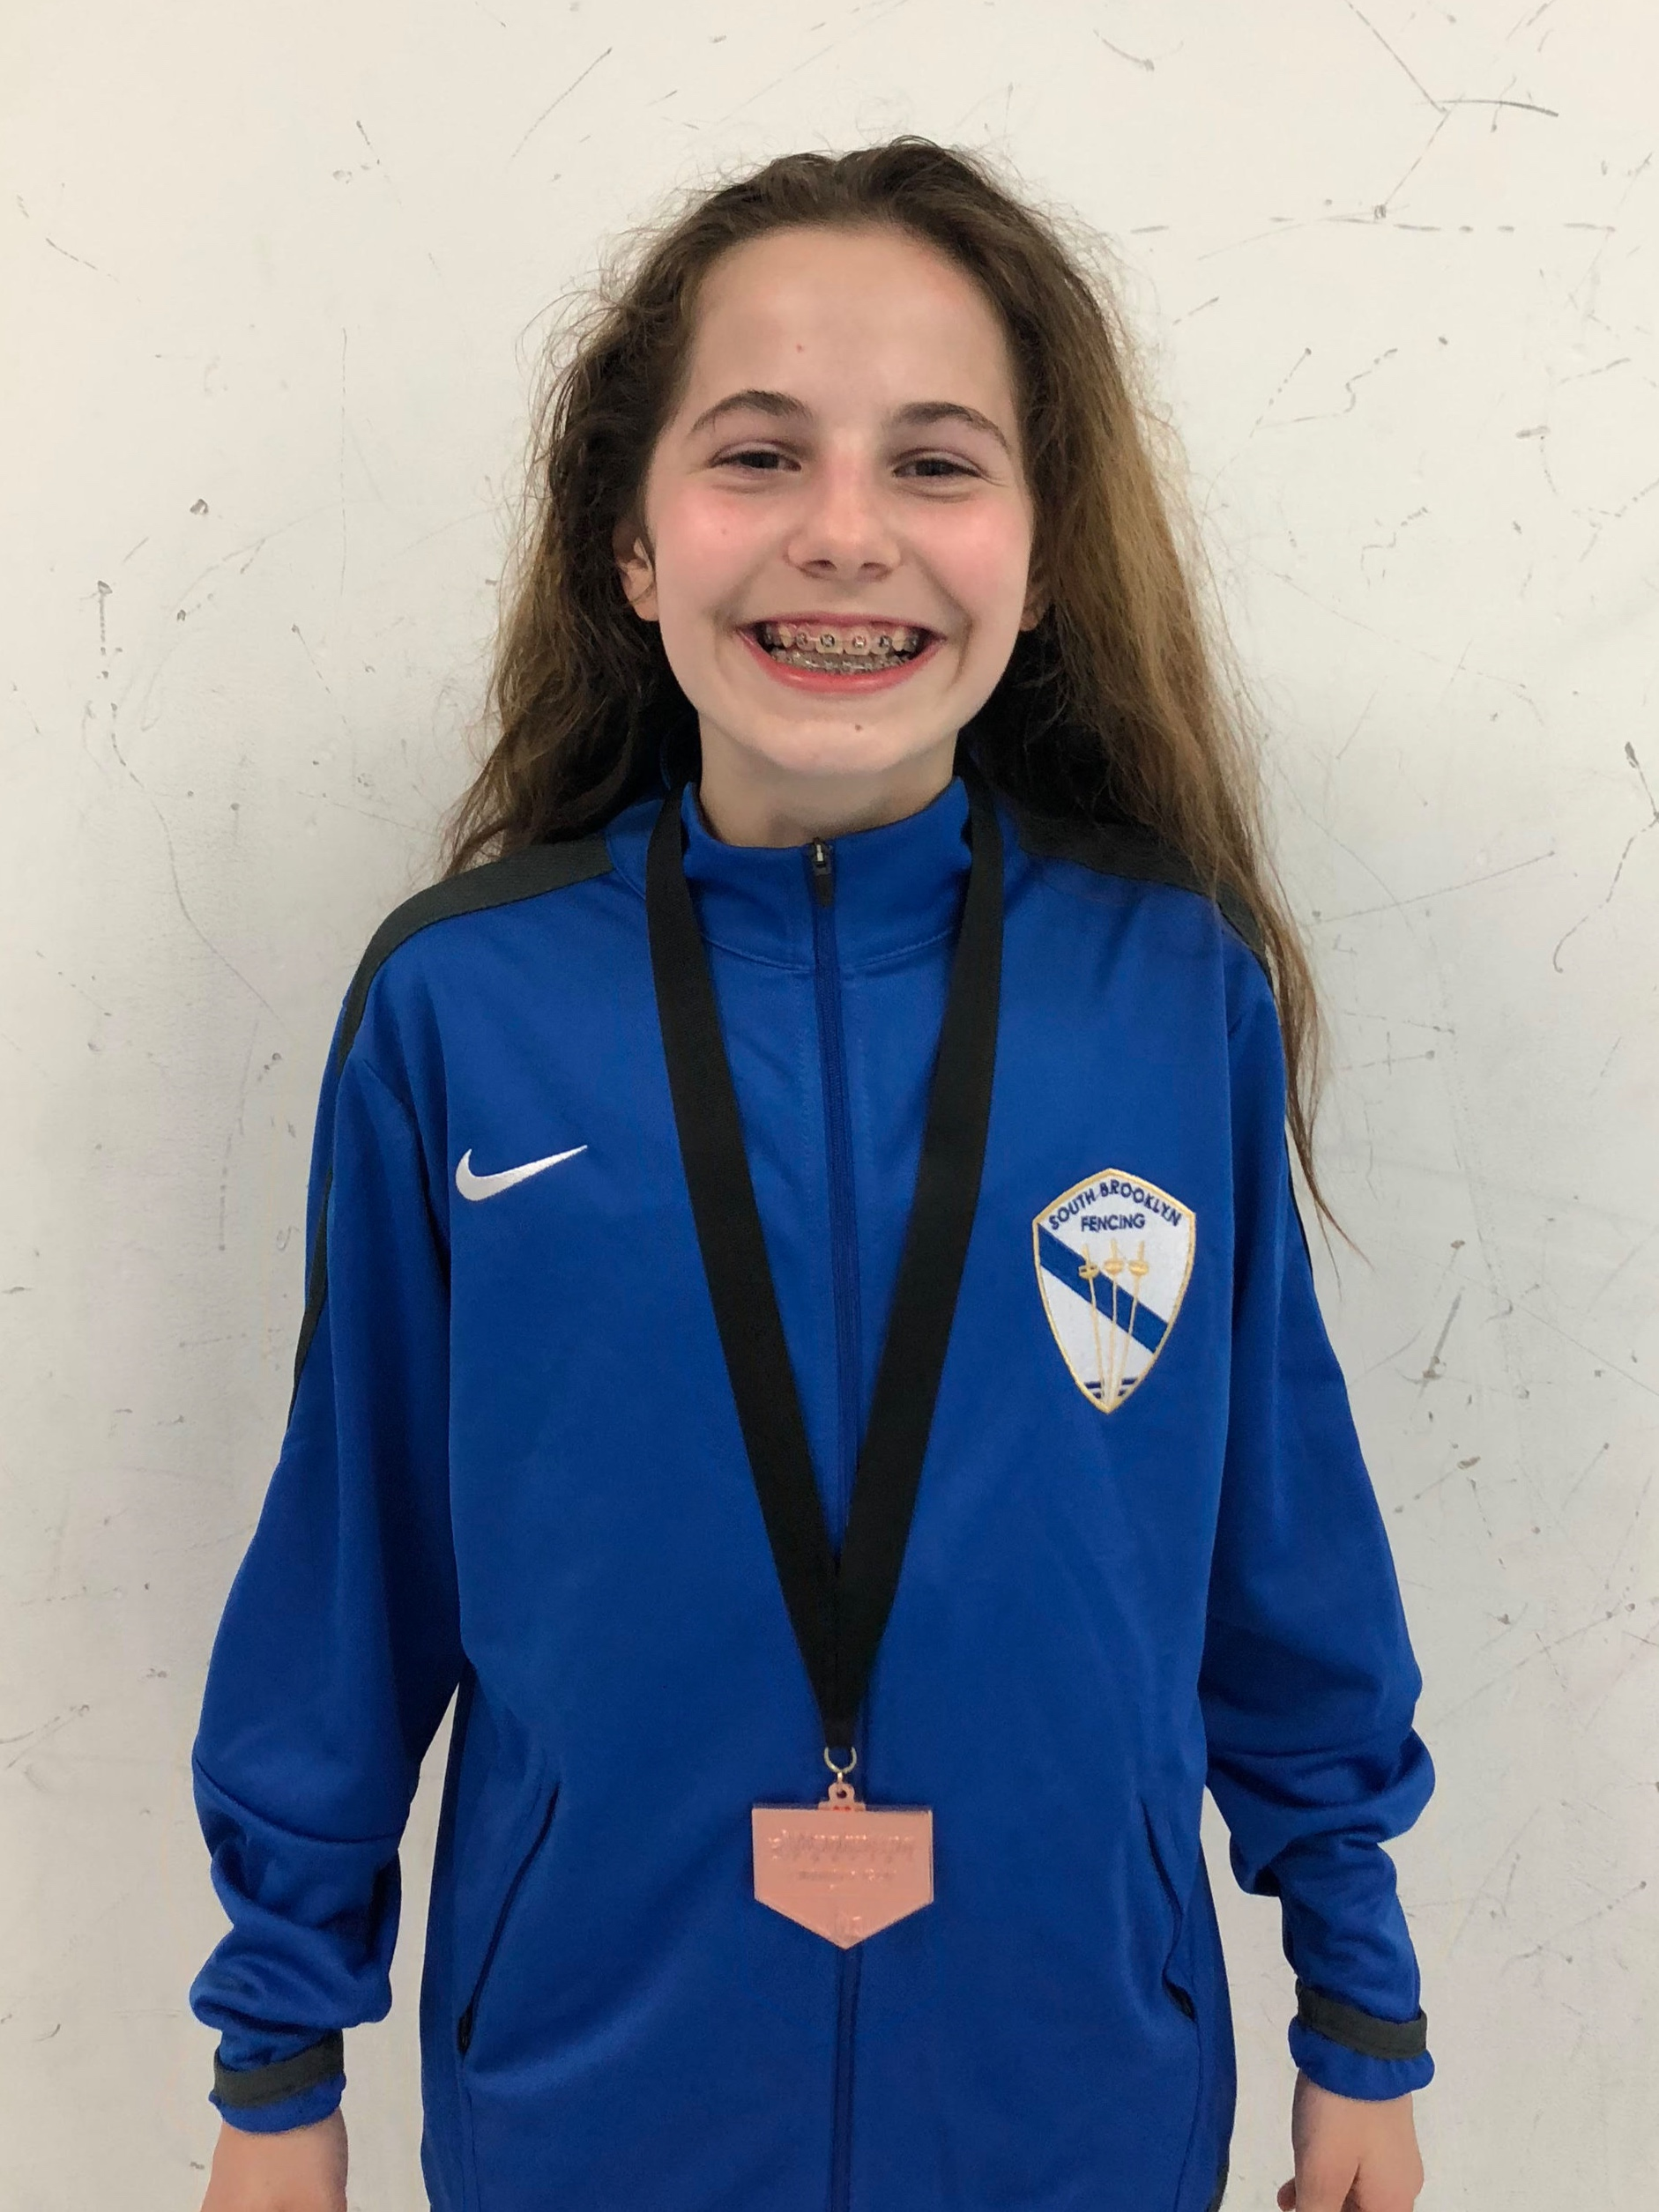 MFC LIBERTY CUP 2019 - Y12 women's foil Xeta Devlin 8th place Sara Amr Hossny 5th place Emily Cascone 6th place   May 19th 2019